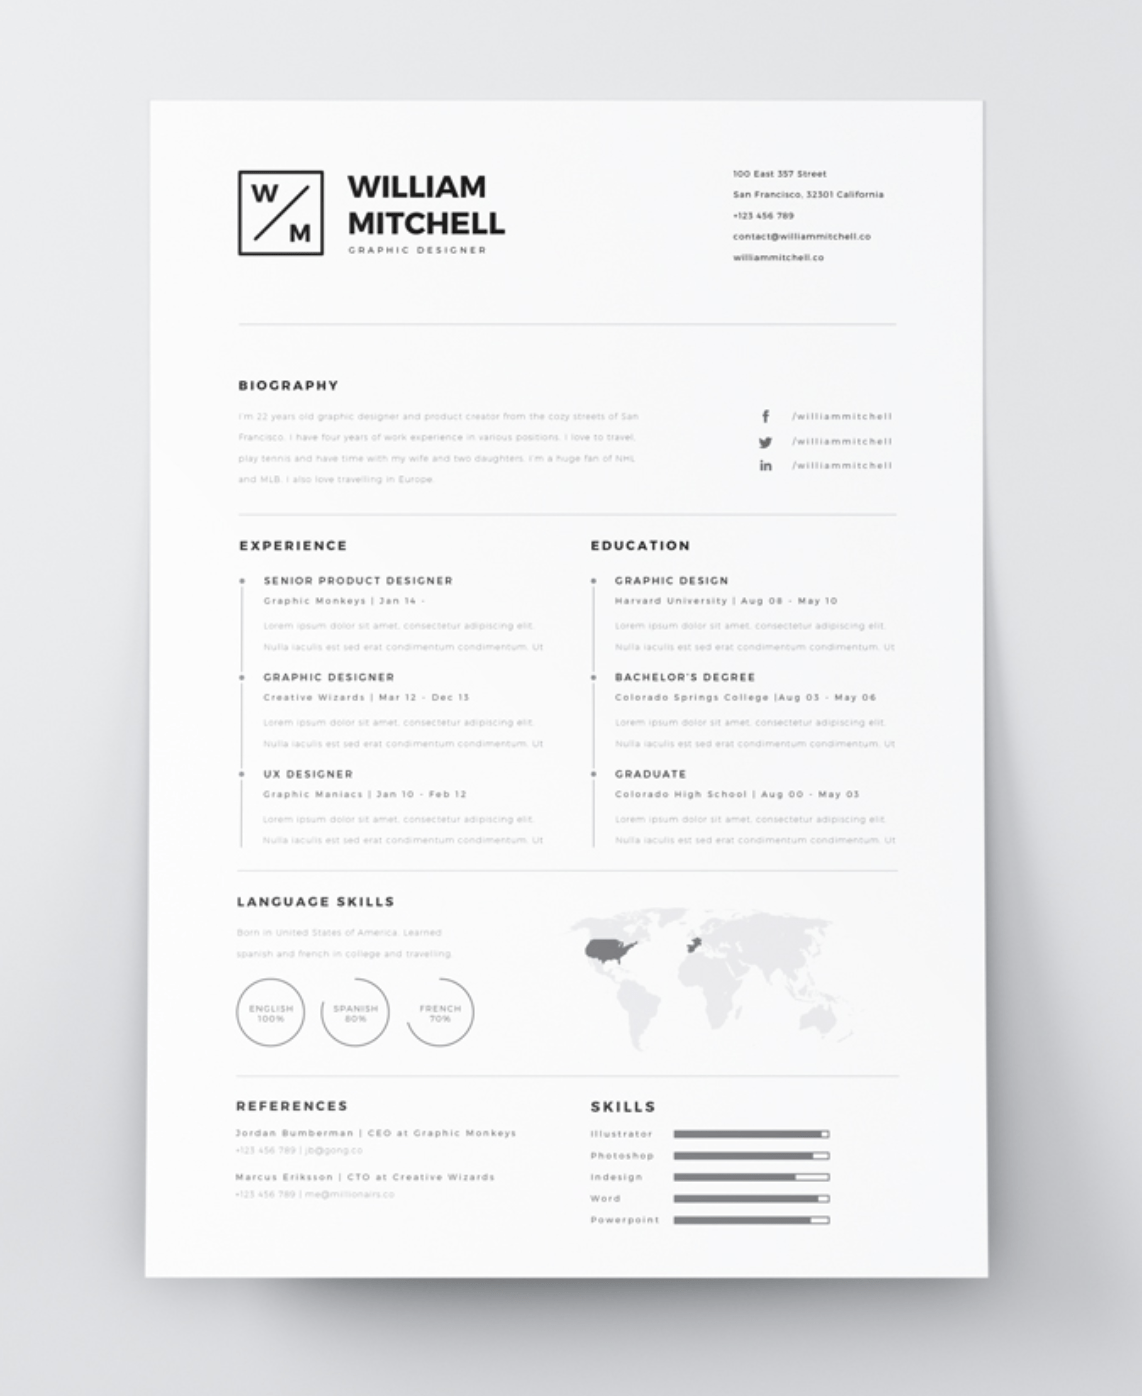 Free Resume Download Template Free Creative Resume Template Downloads For 2019